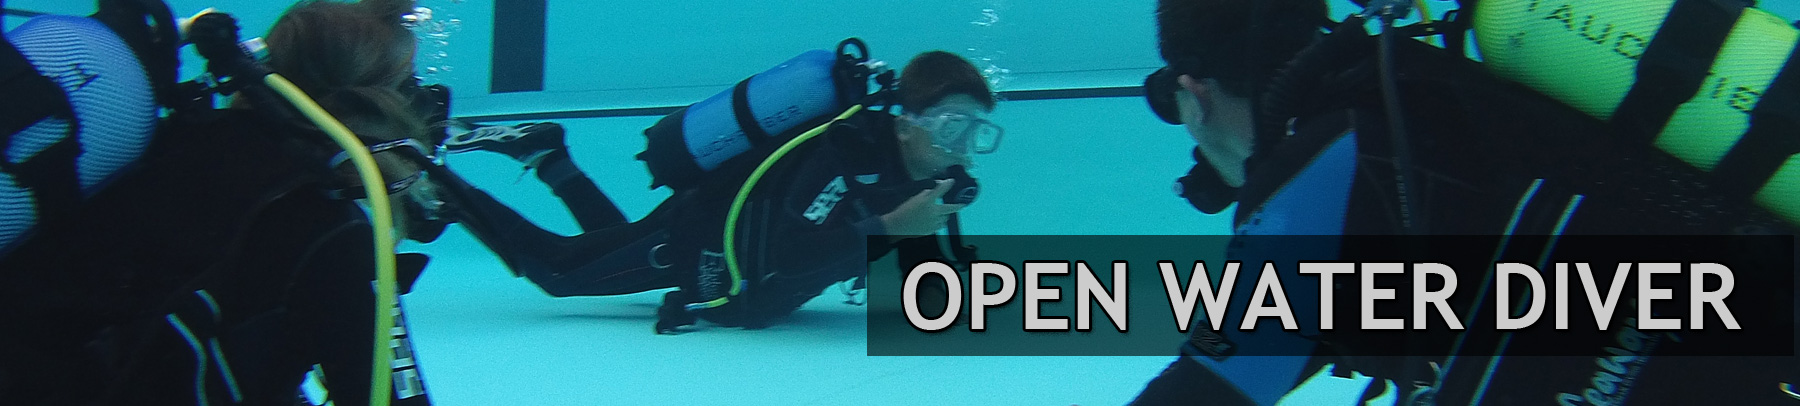 Kategorie-header-Open-Water-Diver